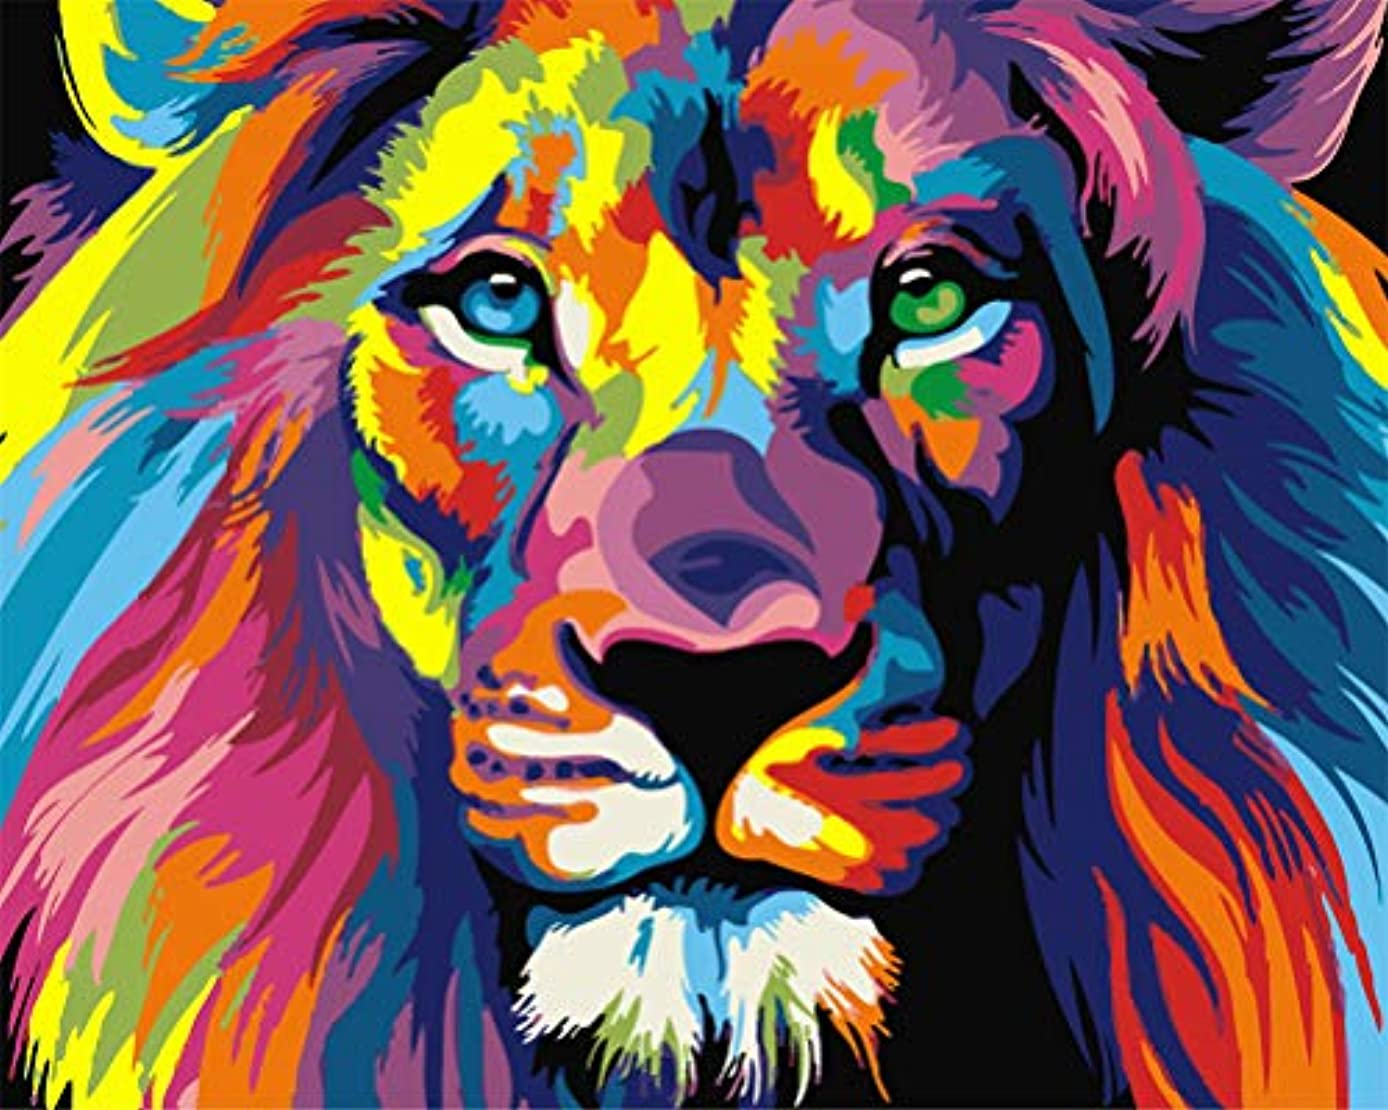 DIY Oil Painting kit, Paint by Numbers kit for Kids and Adults - Colorful Lion 16x20 inches (Without Frame)